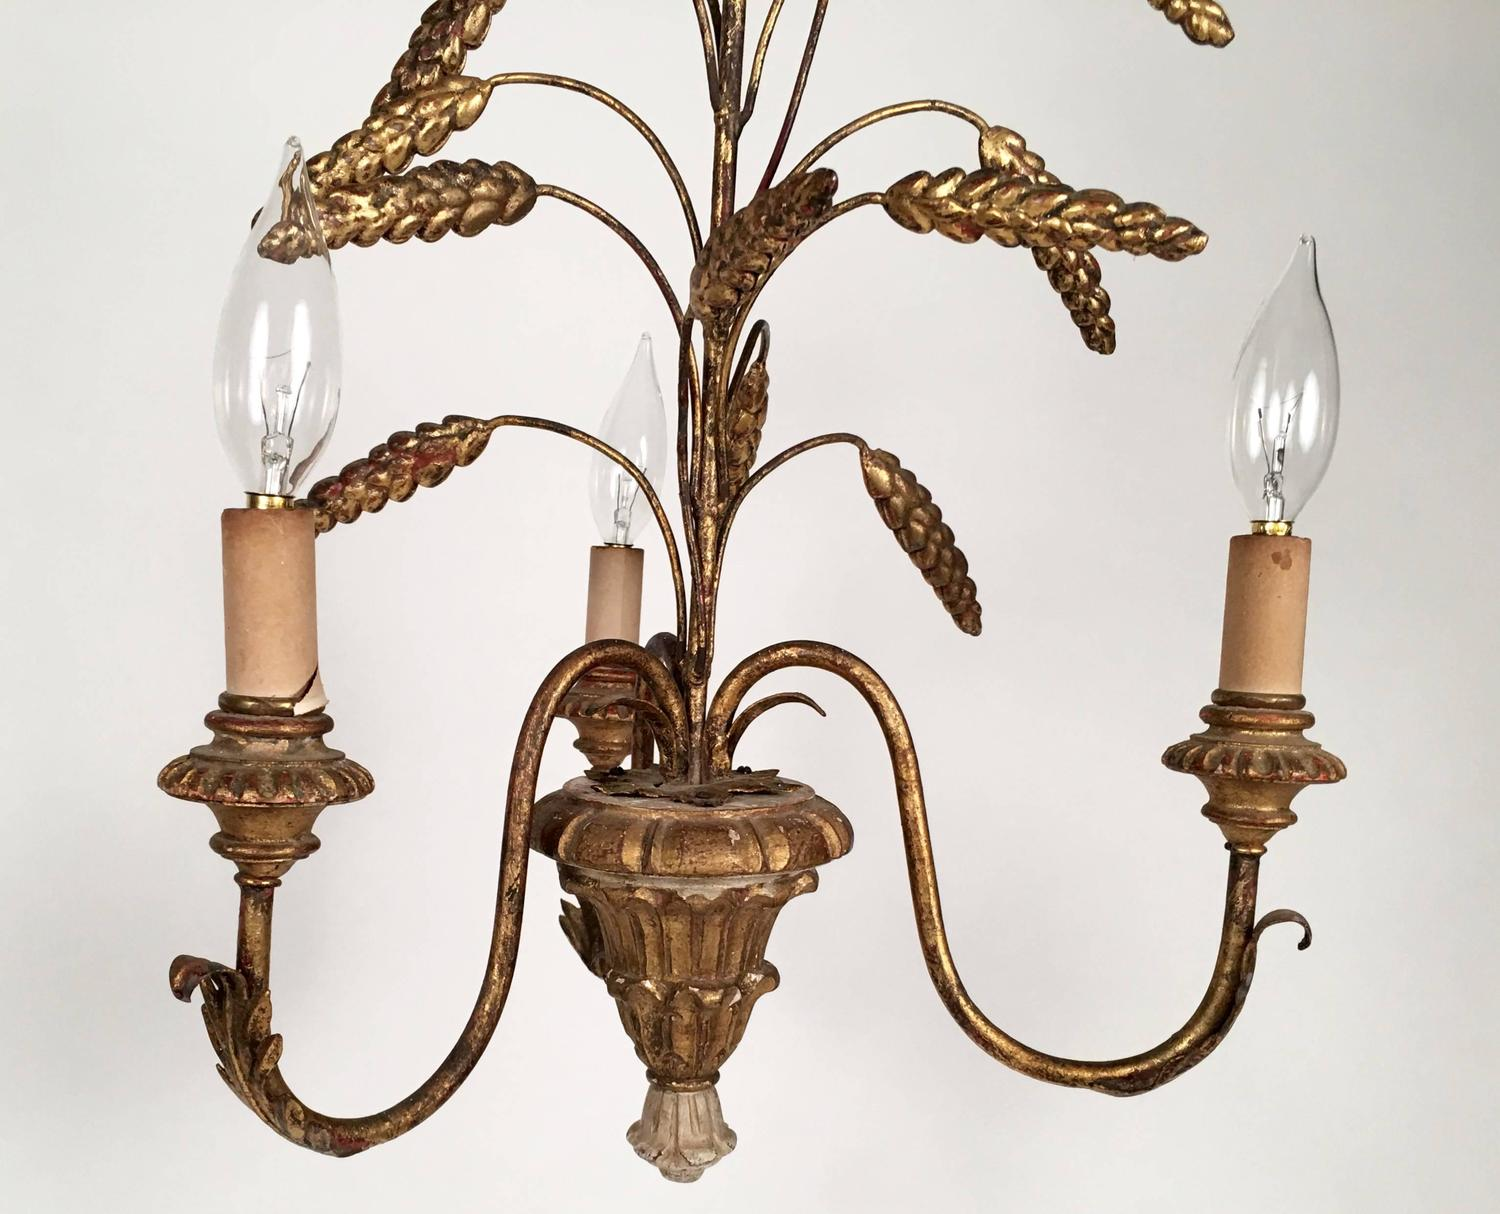 Sea Gull Lighting Windgate 9 In W 3 Light Brushed Nickel: Small Gilded Sheaf Of Wheat Three-Light Chandelier At 1stdibs